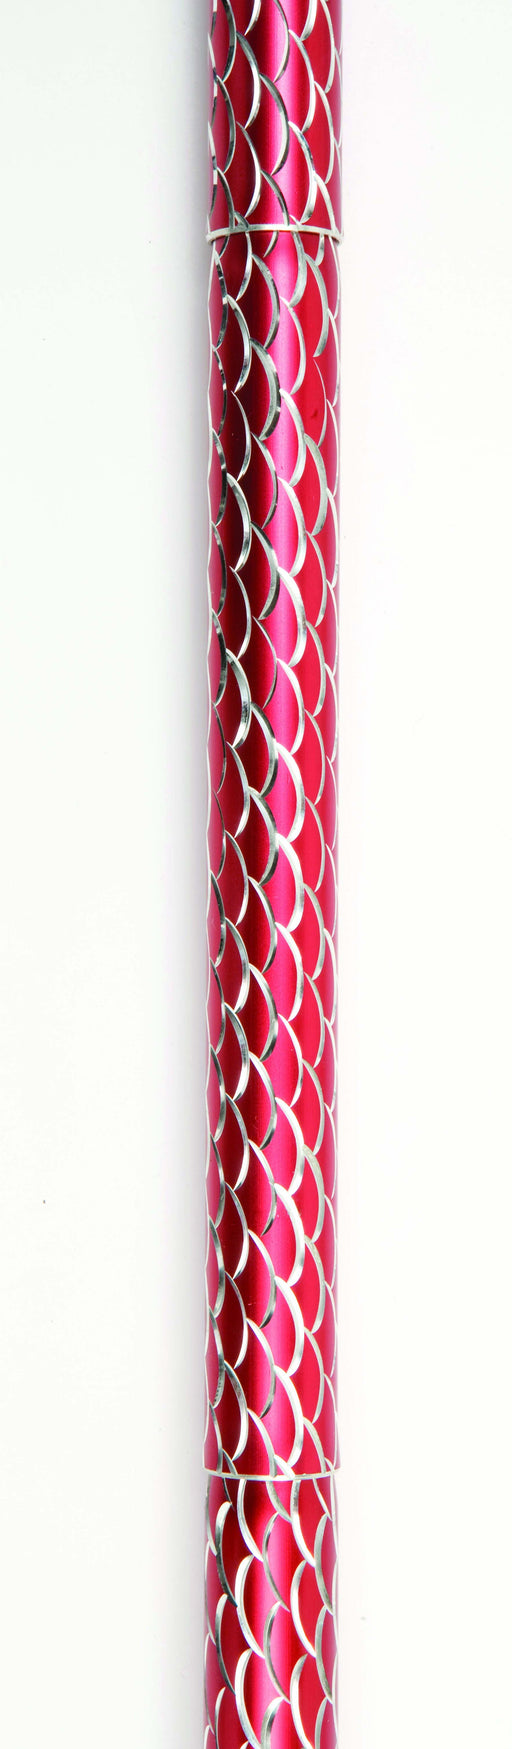 Folding Cane With Strap (Red Spiral Wave) - Mobility2you - discount wholesale prices - from Drive DeVilbiss Healthcare